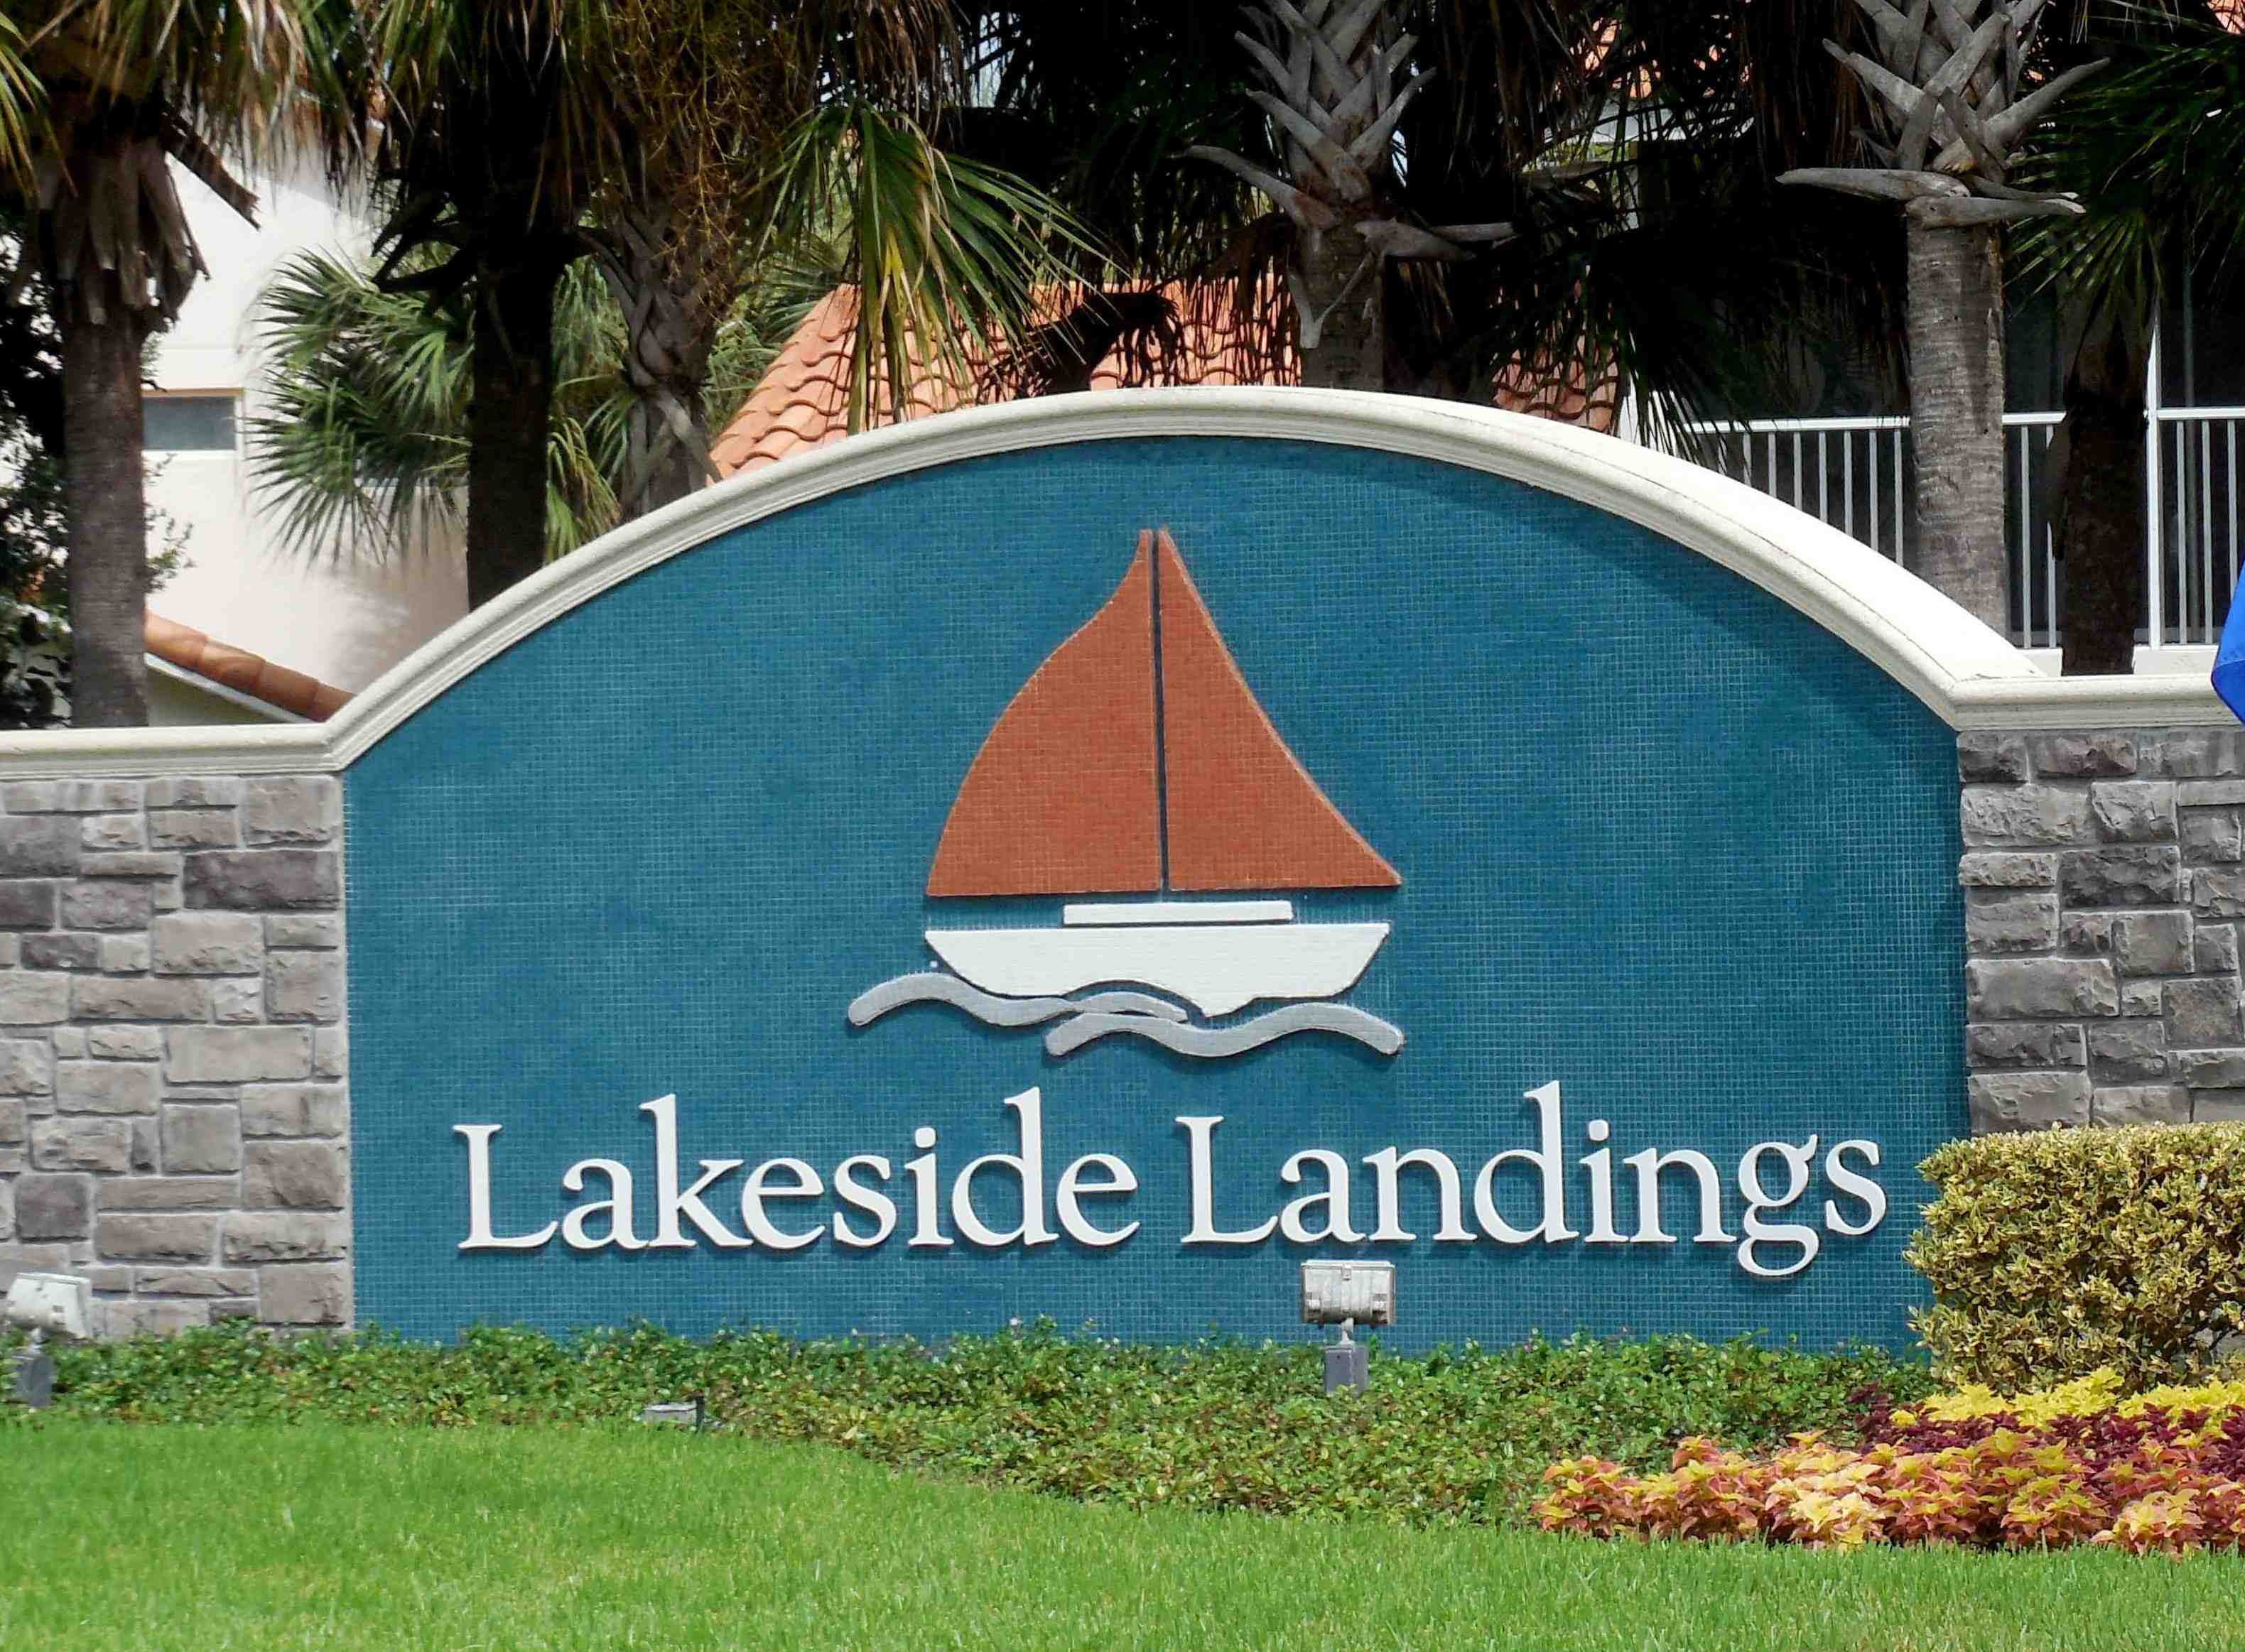 Lakeside Landings man arrested after allegedly stealing beer from Wawa